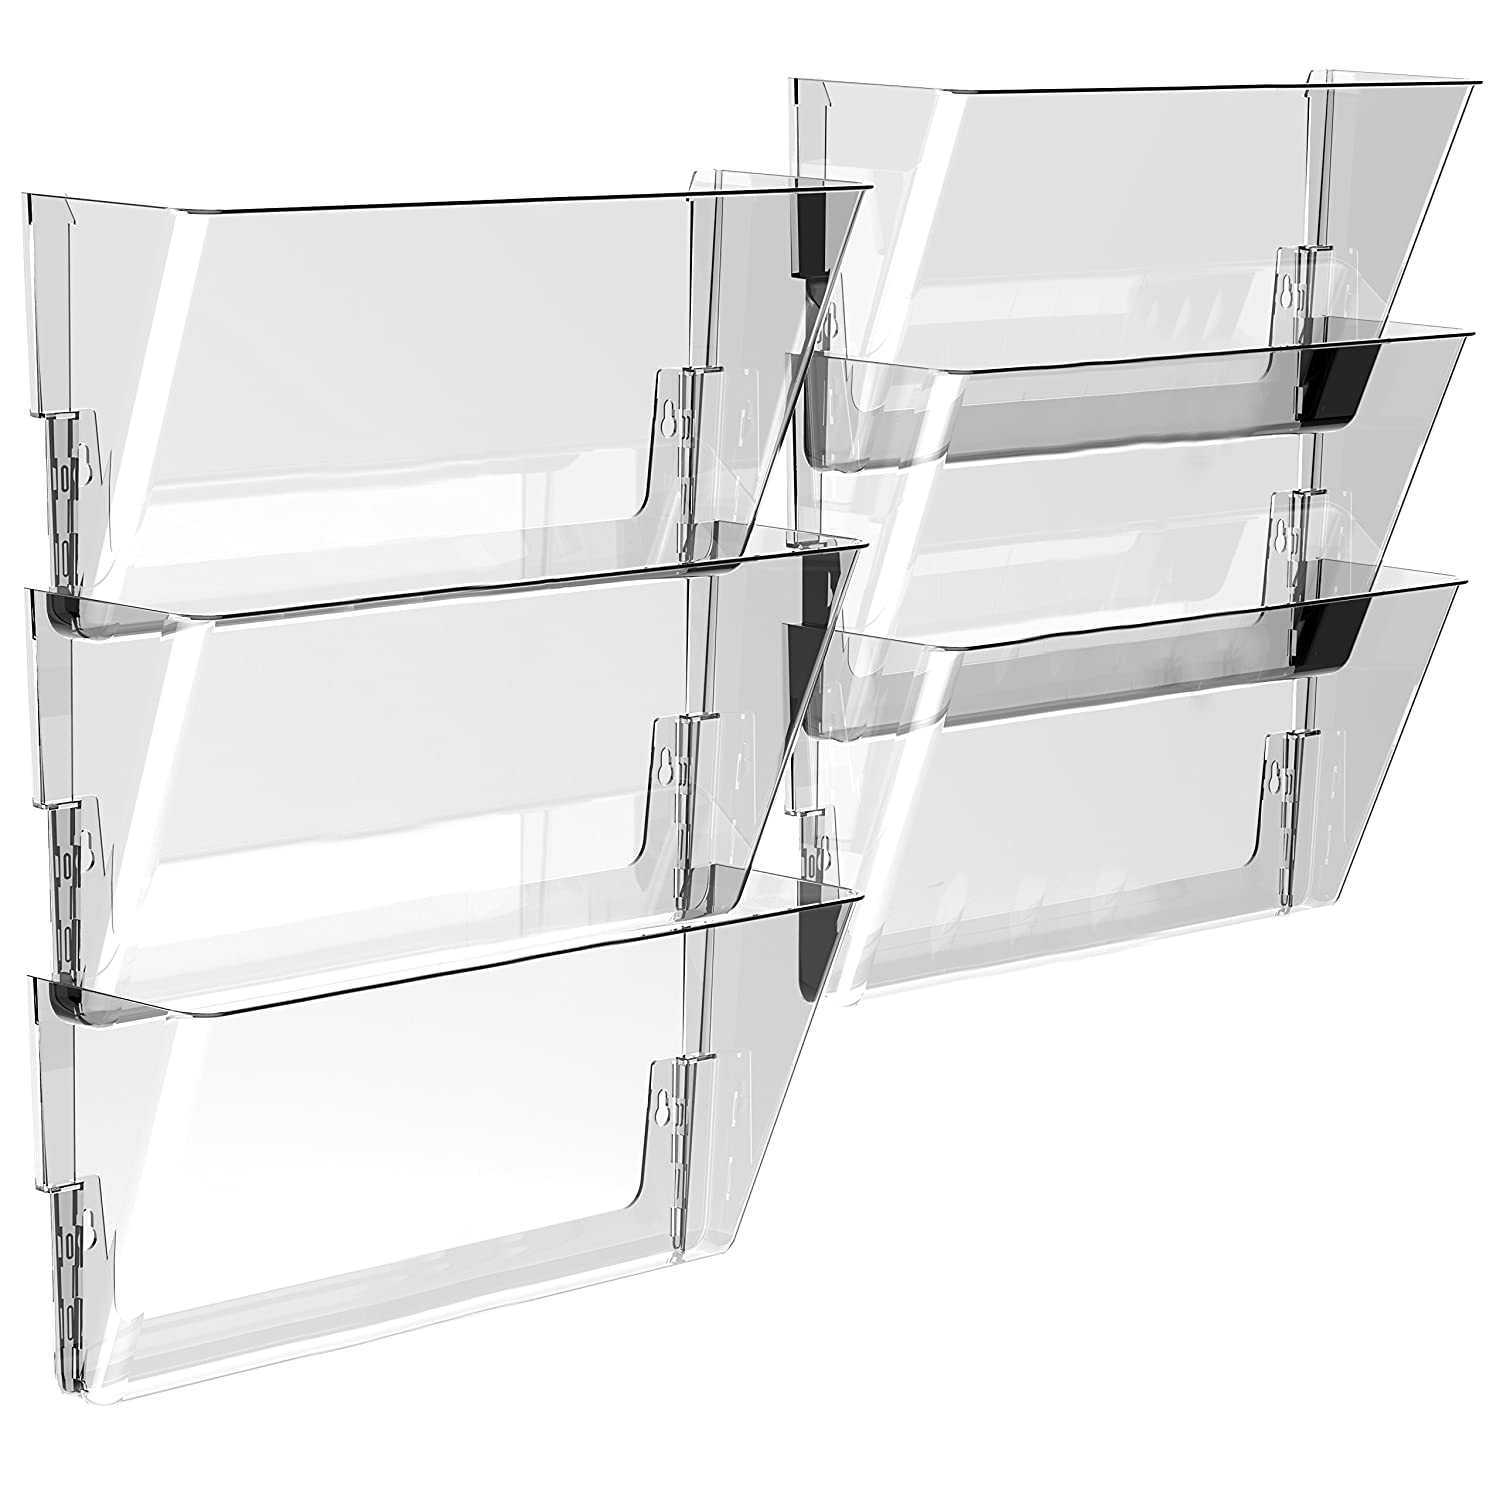 Storex Unbreakable Wall File, Legal Size, 4.5 X 16.25 X 4.5-Inch, Clear, Case of 6 (70321U06C)